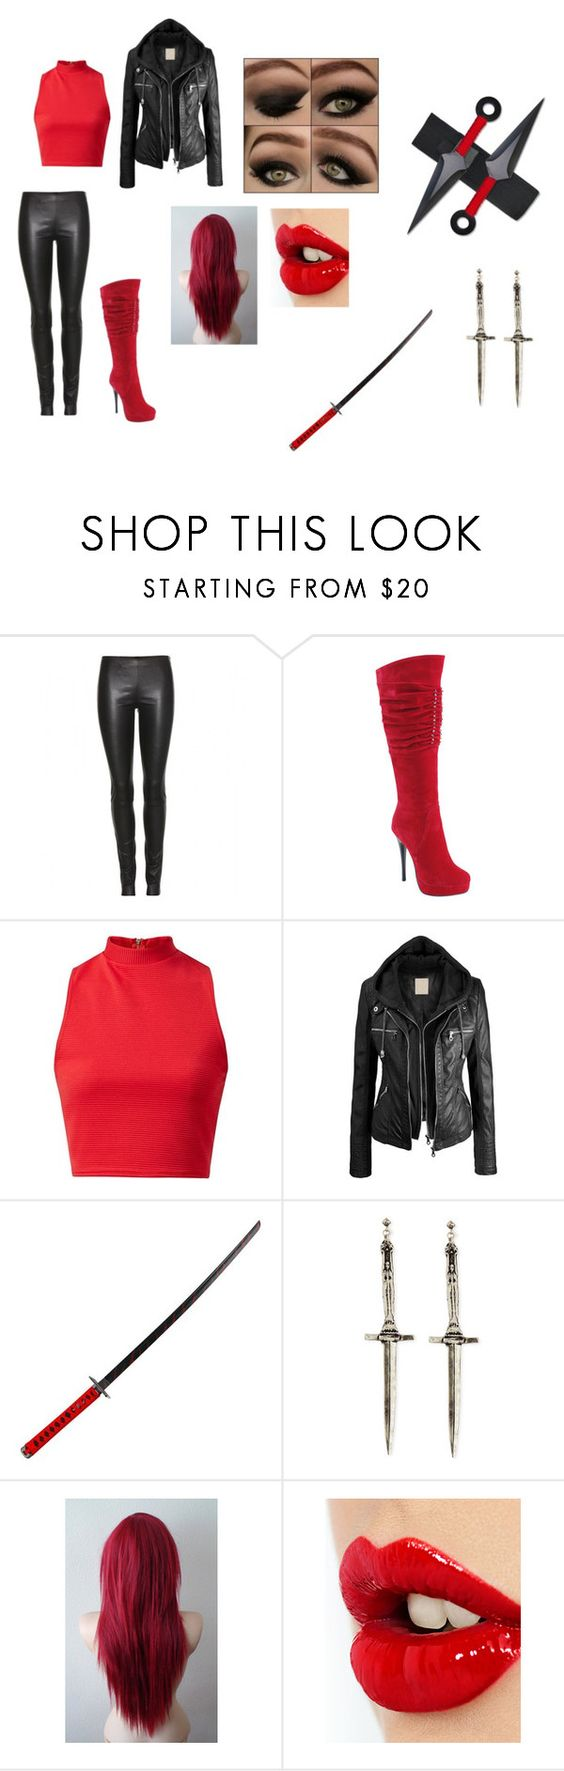 """""""Shredder"""" by wildchild-98 ❤ liked on Polyvore featuring The Row, Summer Rio, Whetstone Cutlery, Pamela Love and Charlotte Tilbury"""